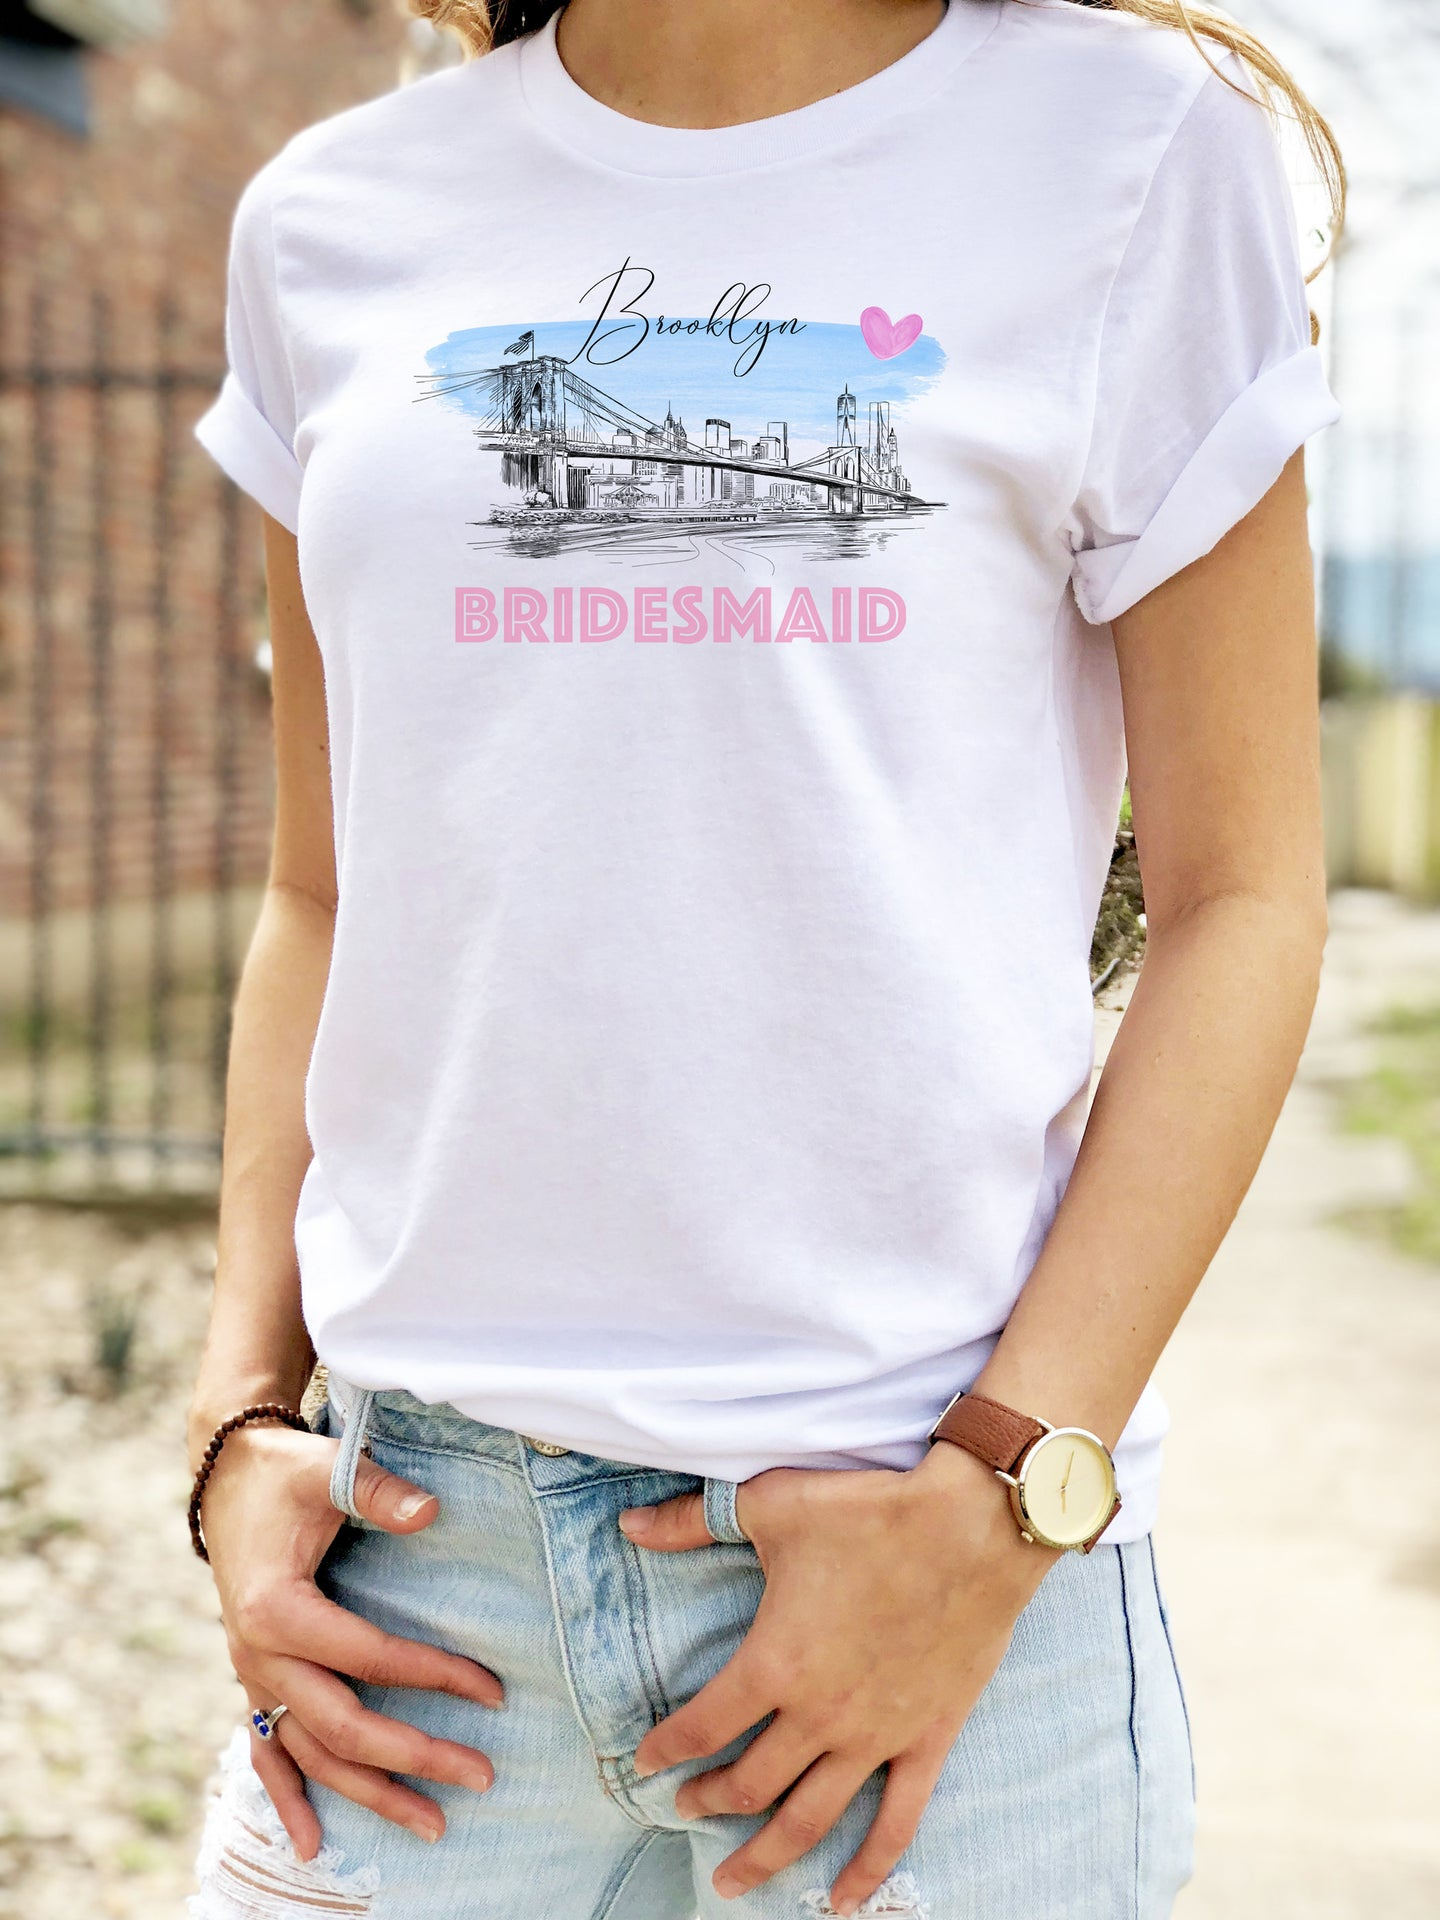 Brooklyn Bridge Bridesmaid Shirt, T-Shirt, New York Skyline, Wedding Shirt, Bride, Bridal Shower Gift, Bachelorette, Gift, Tee